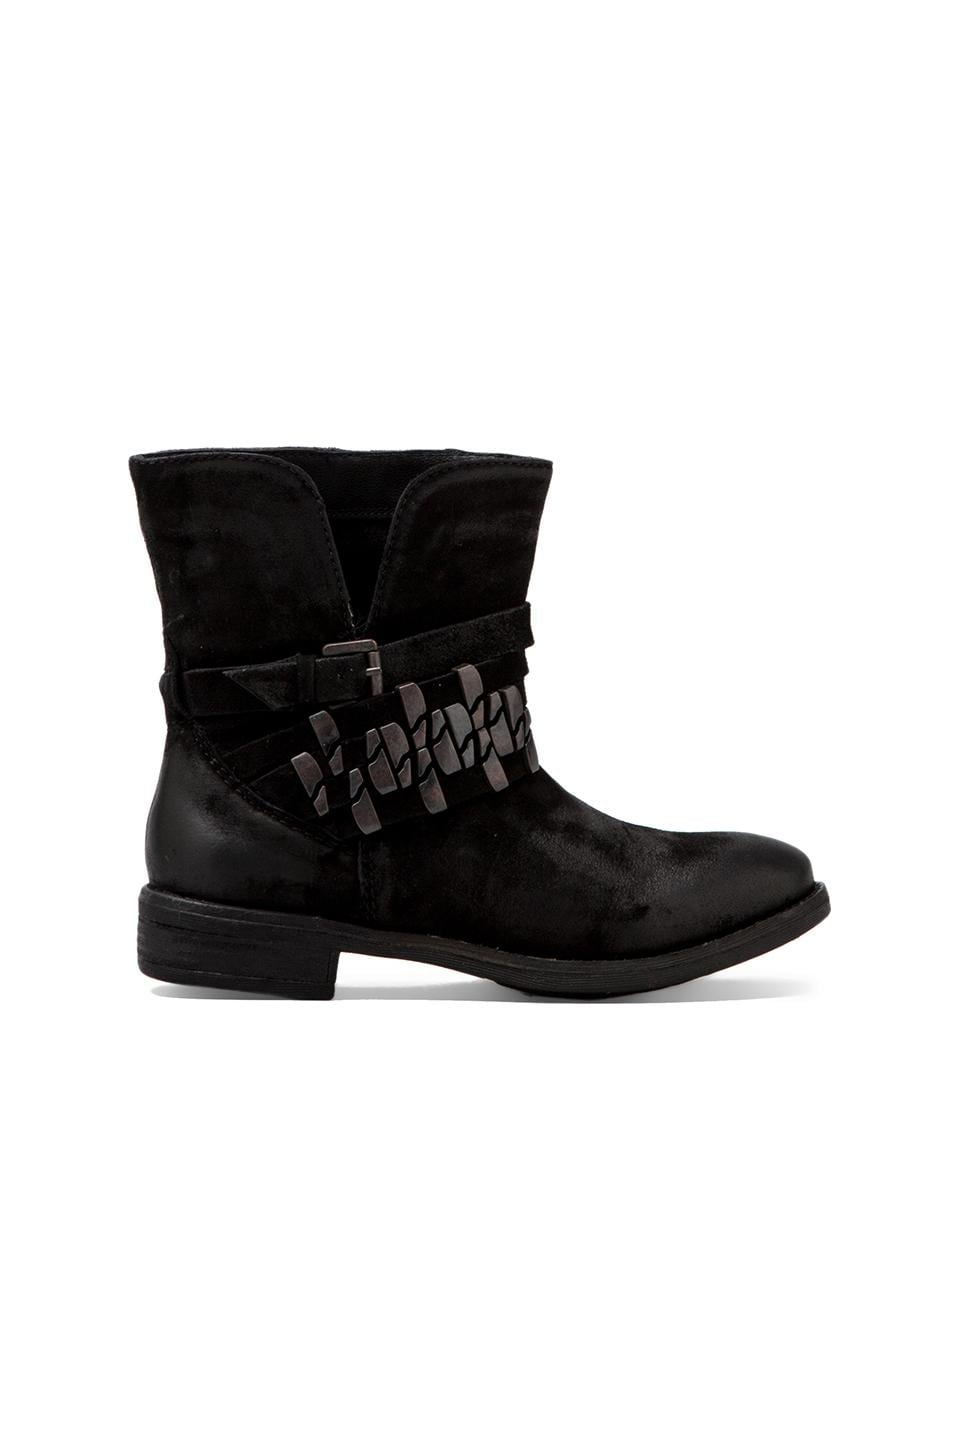 Steven Tracker Boot in Black Distressed Leather